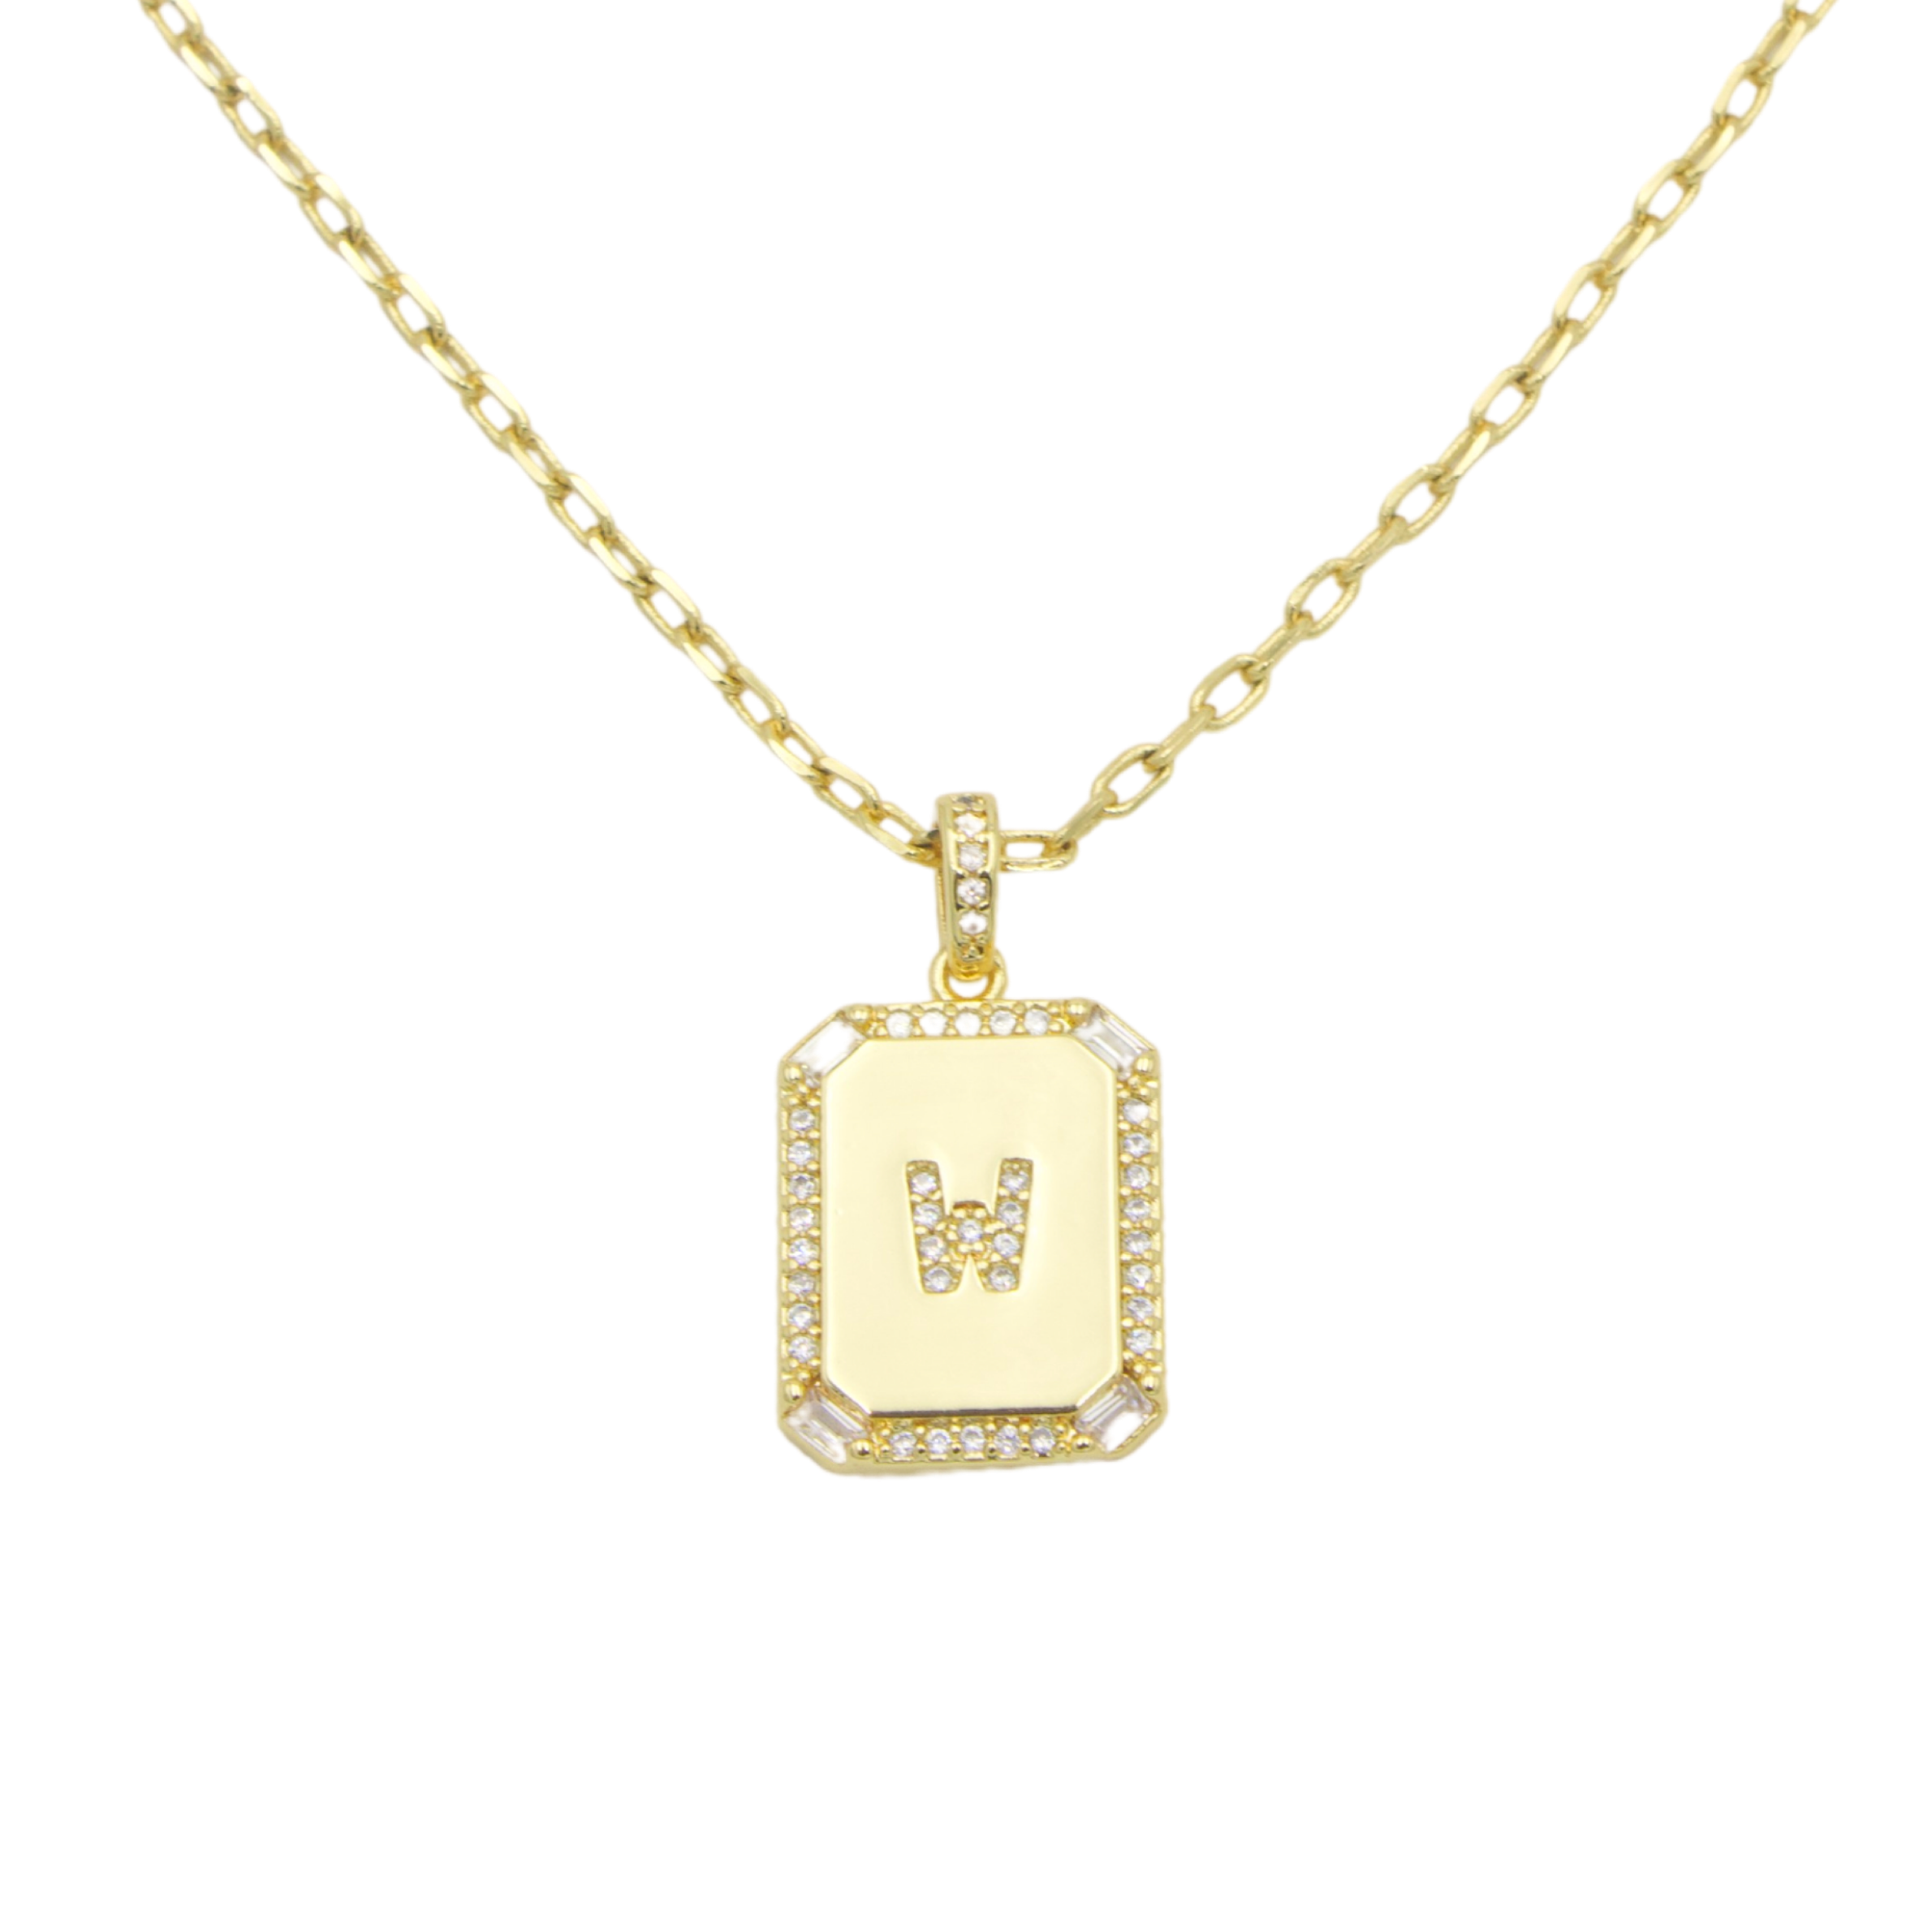 AW Boutique's gold filled 16 inch cable chain necklace finished with a dainty initial pendant with cubic zirconia detail. W initial shown.